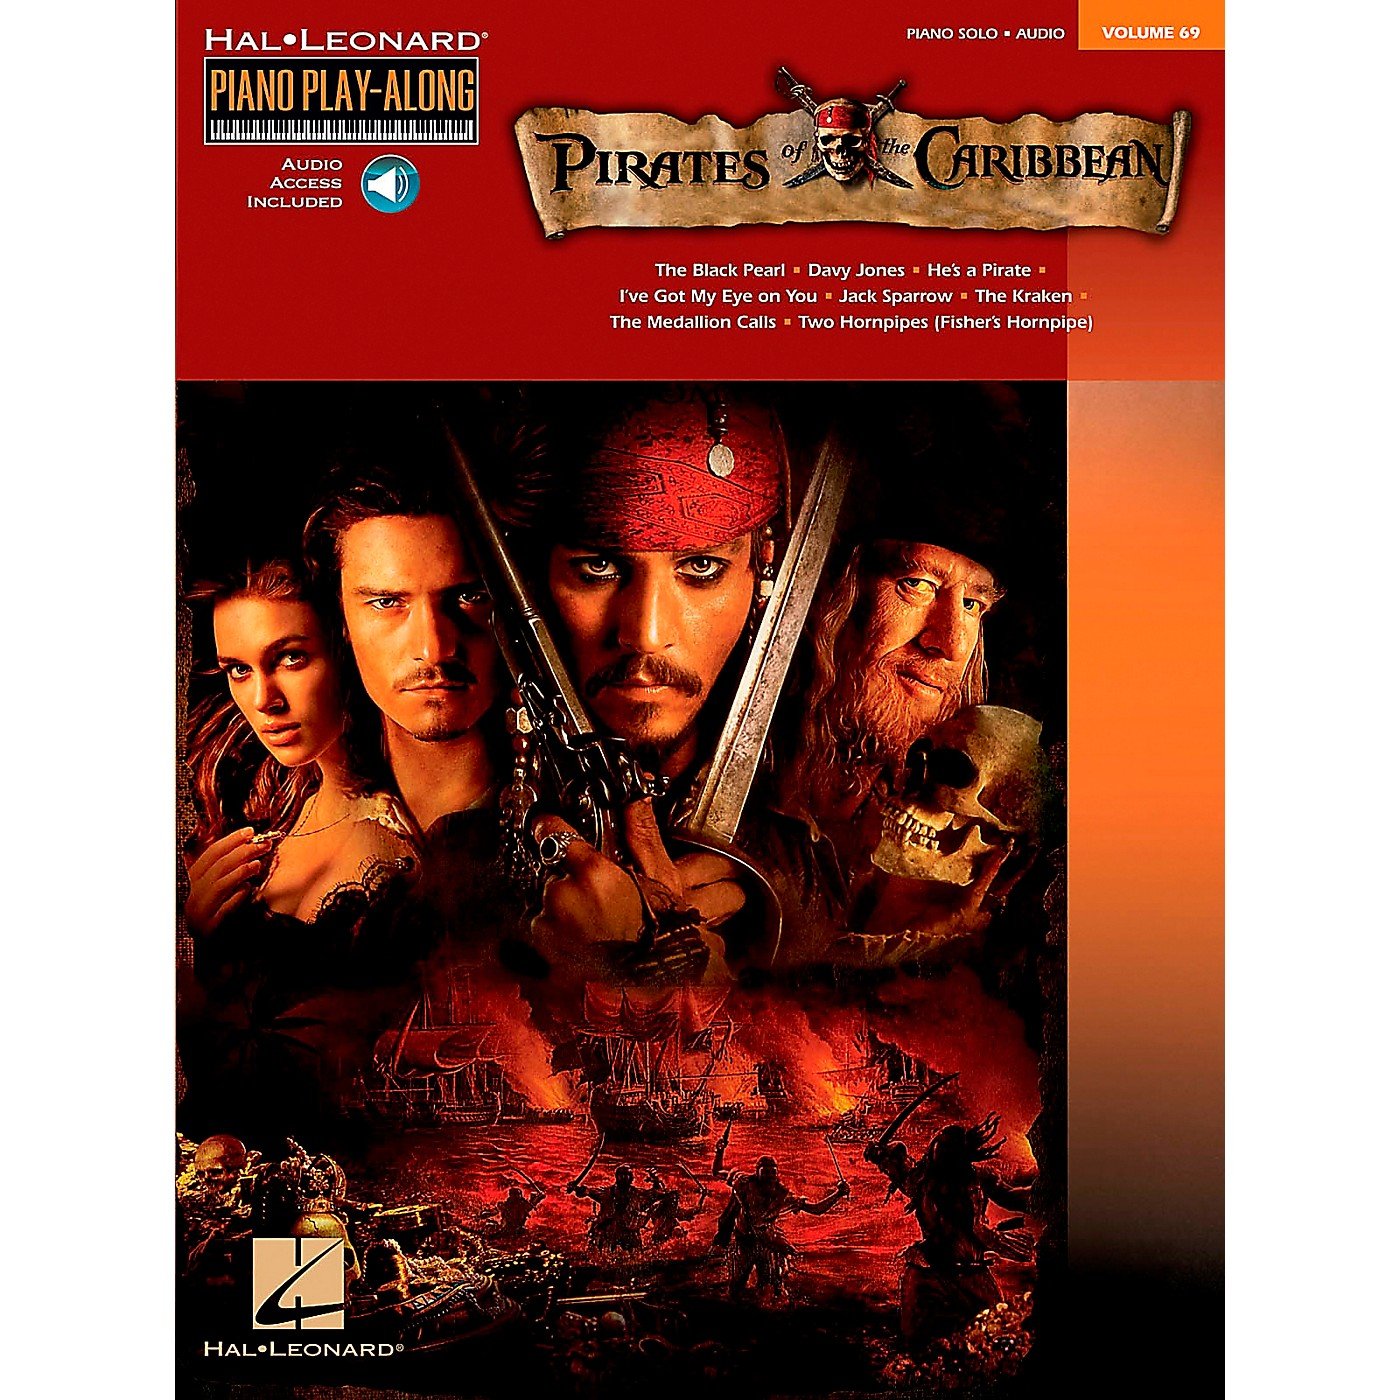 Hal Leonard Pirates Of The Caribbean - Piano Play-Along Volume 69 (CD/Pkg) arranged for piano, vocal, and guitar (P/V/G) thumbnail